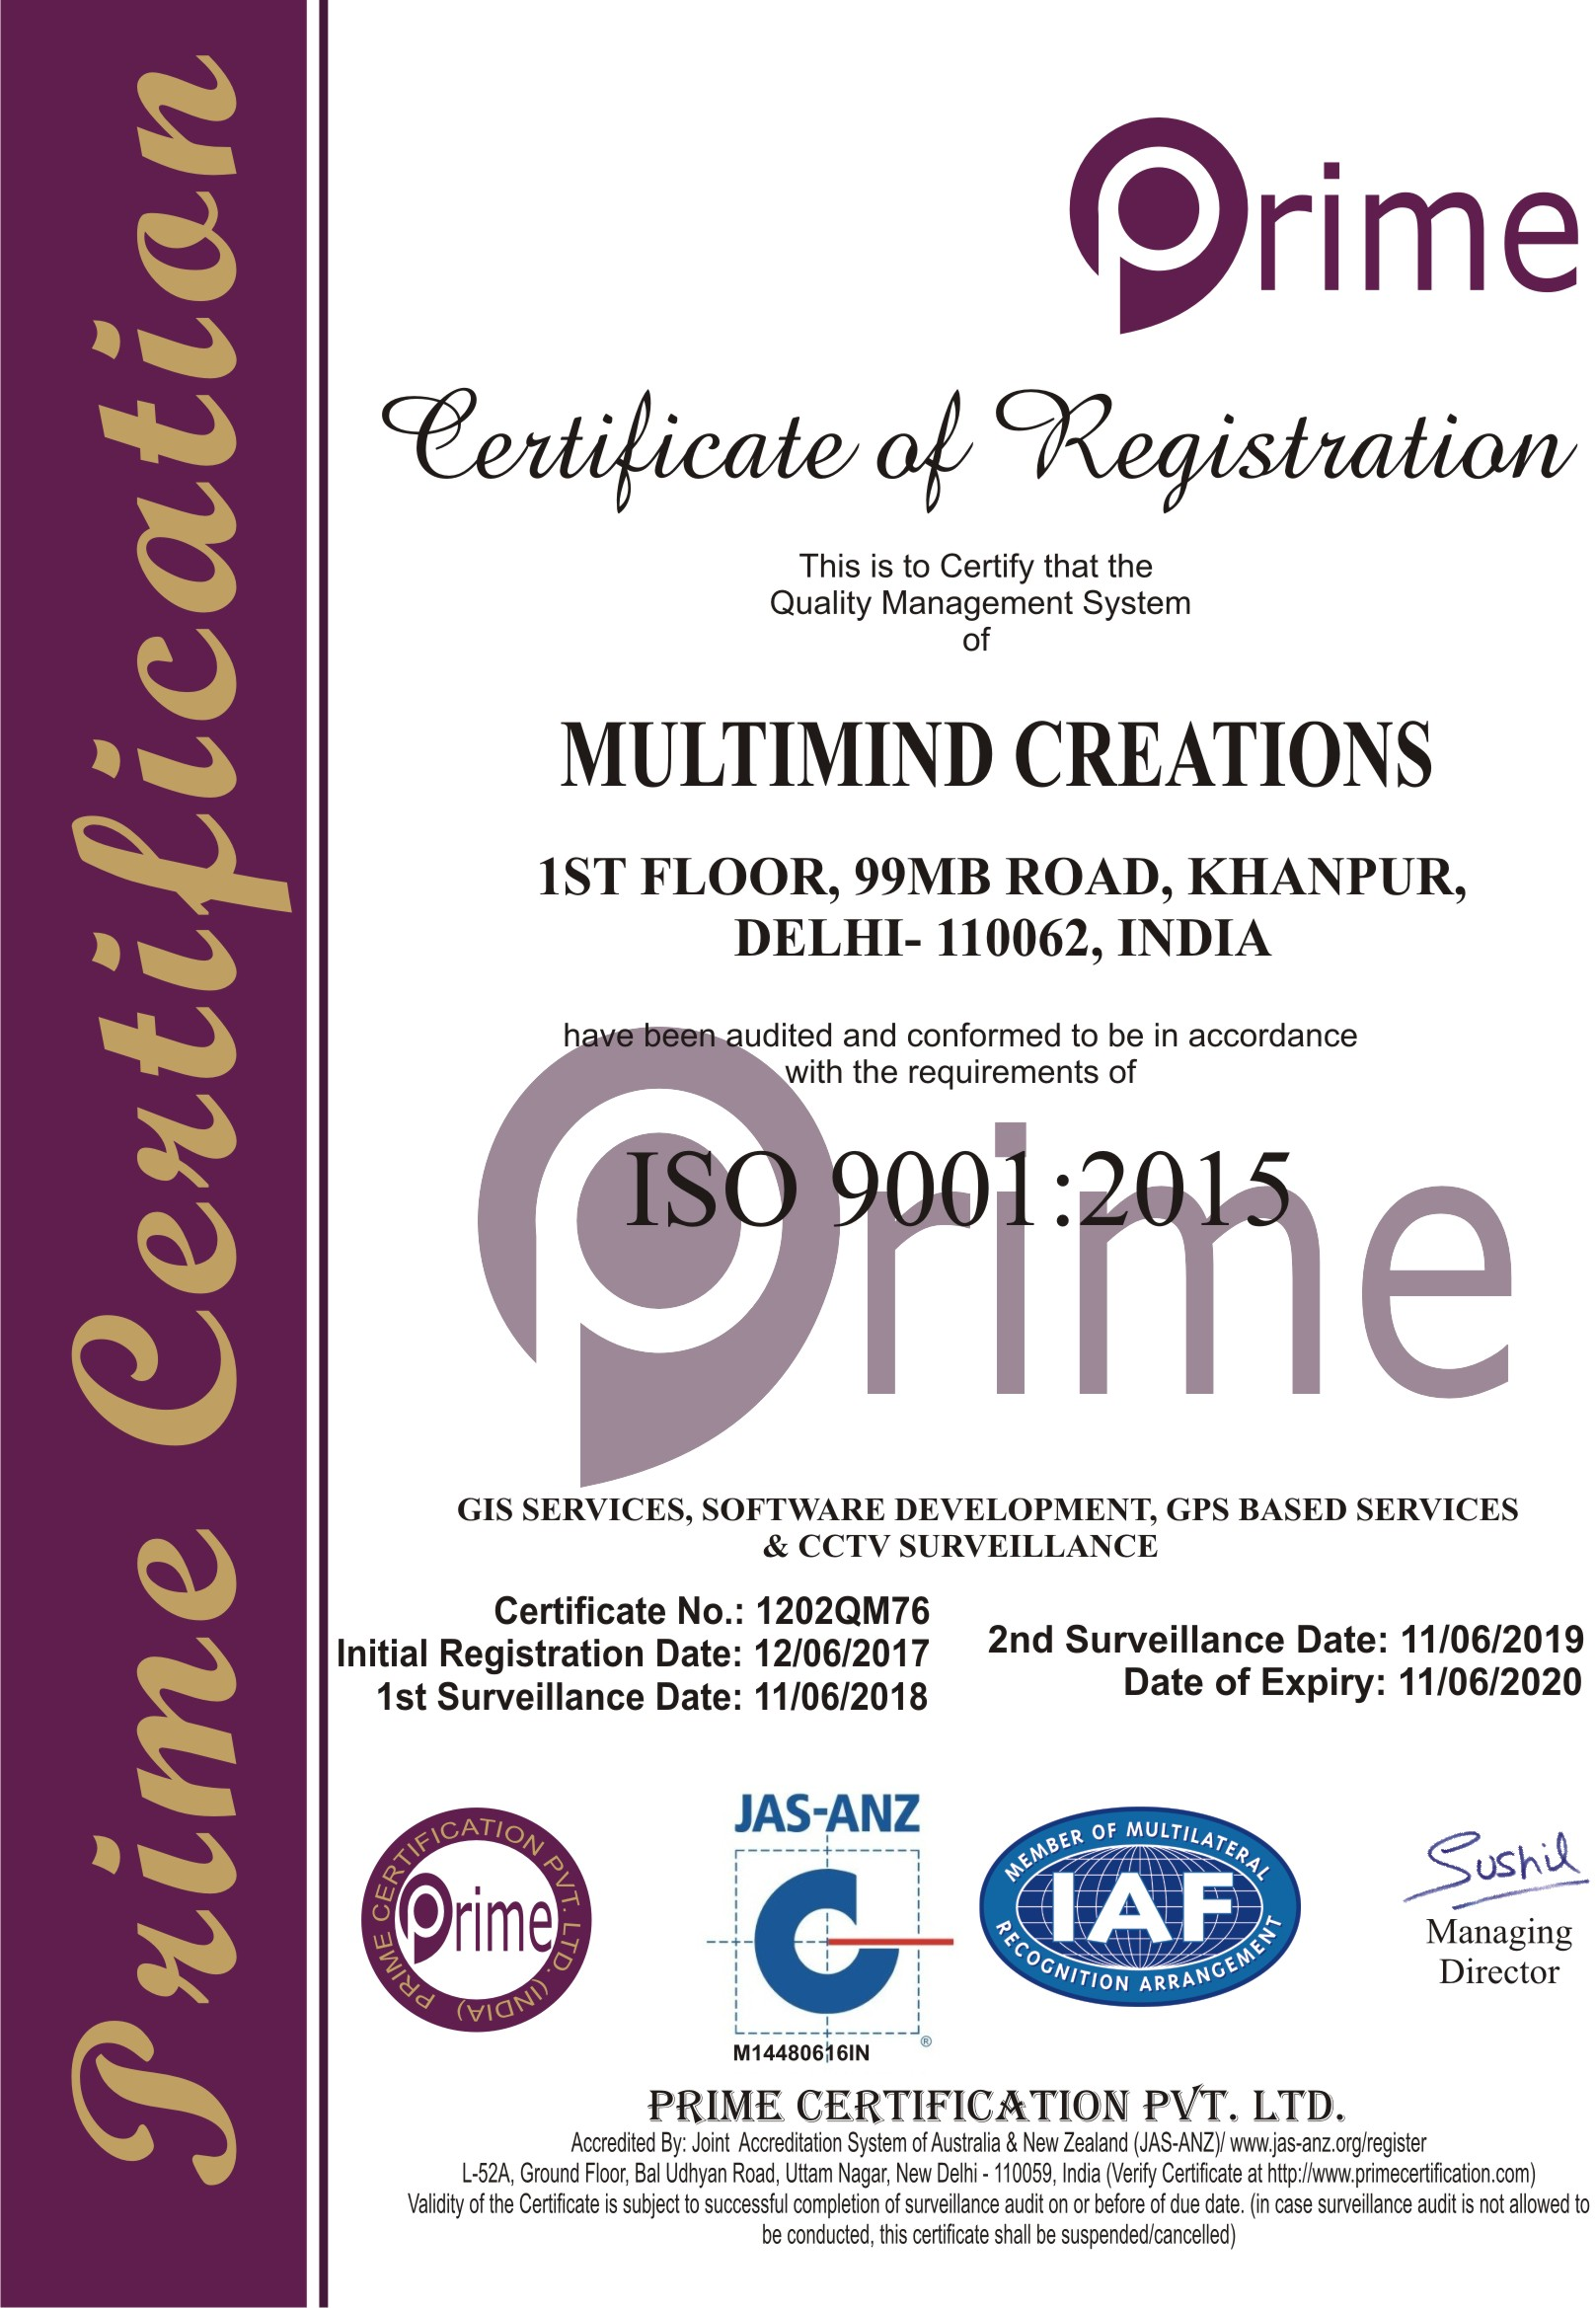 Multimind creations mmc quality certification is a leading expert in system certification and inspection services founded in 2008 organization has built a credible reputation xflitez Gallery